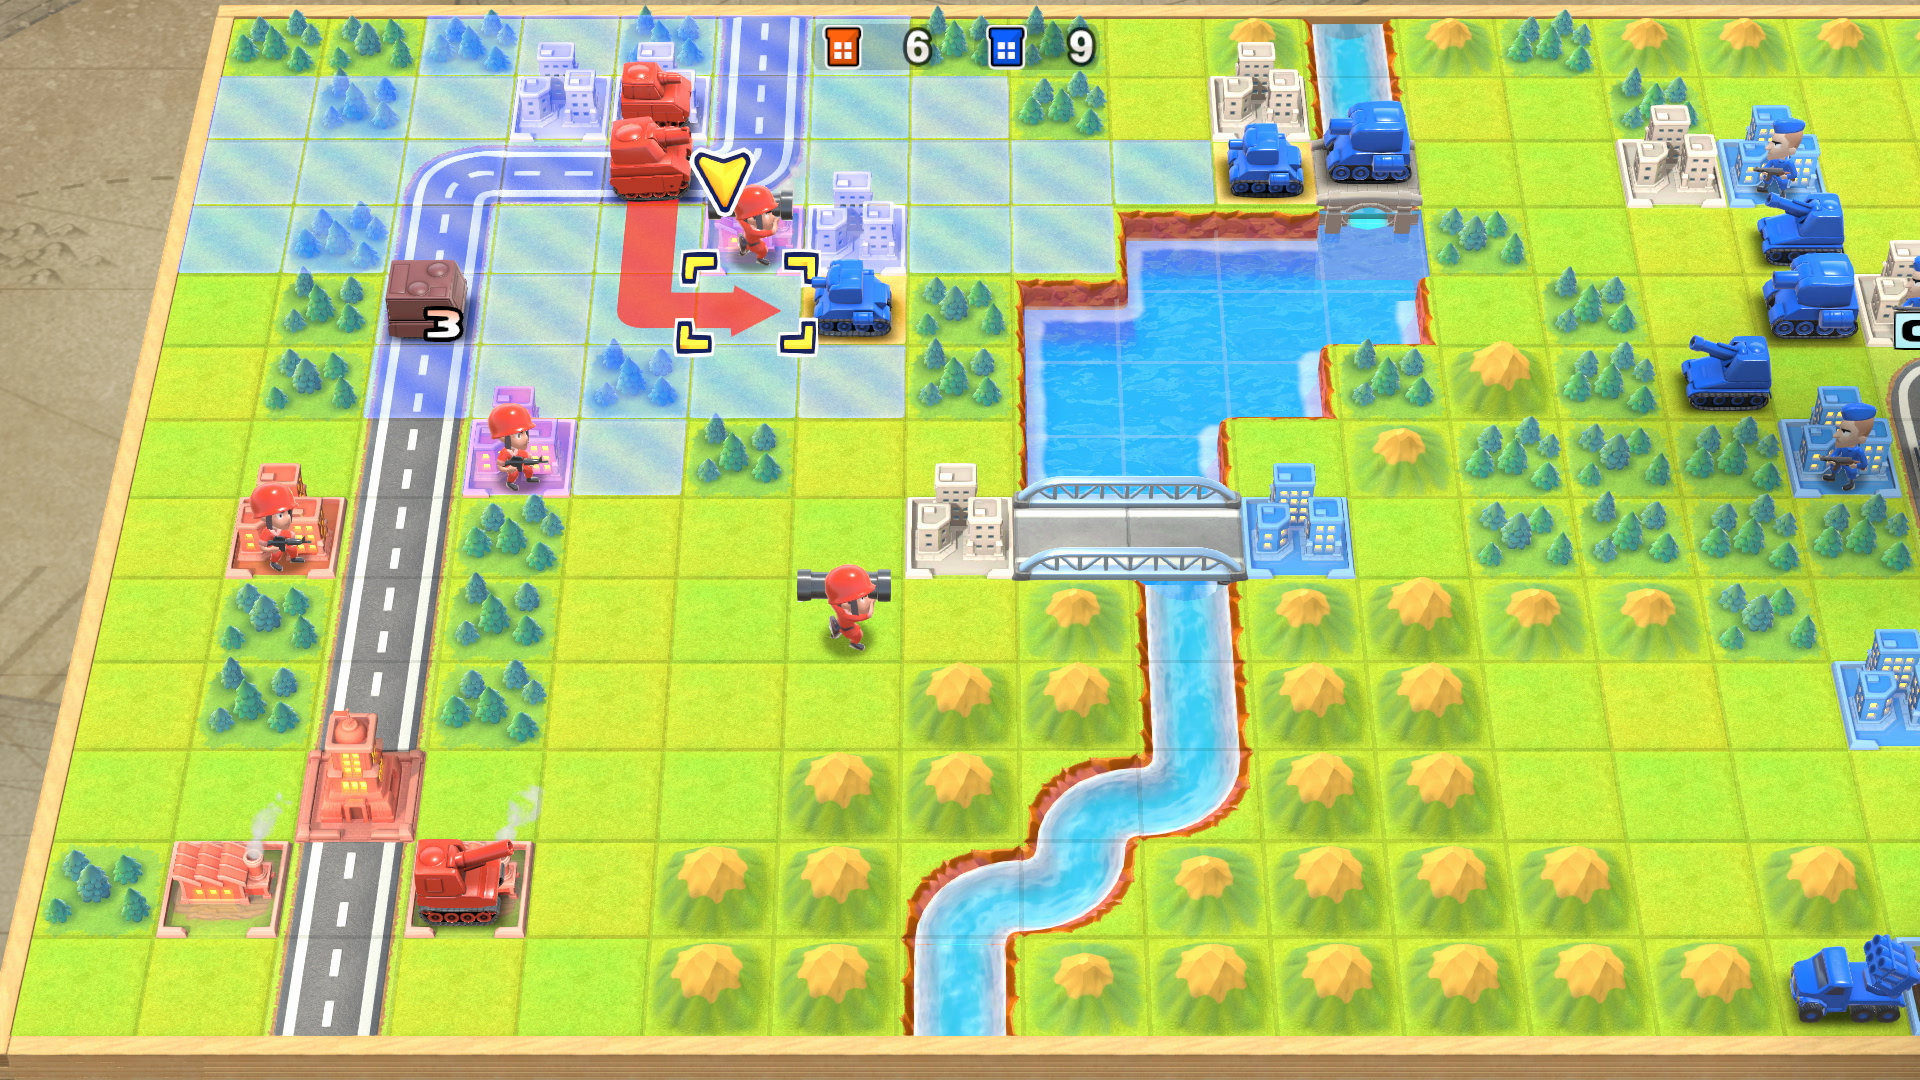 Advance Wars 1+2 Re-Boot Camp Screenshot of a top-down view on a cartoony grid-based battlefield dotted with a river, mountains, and trees.